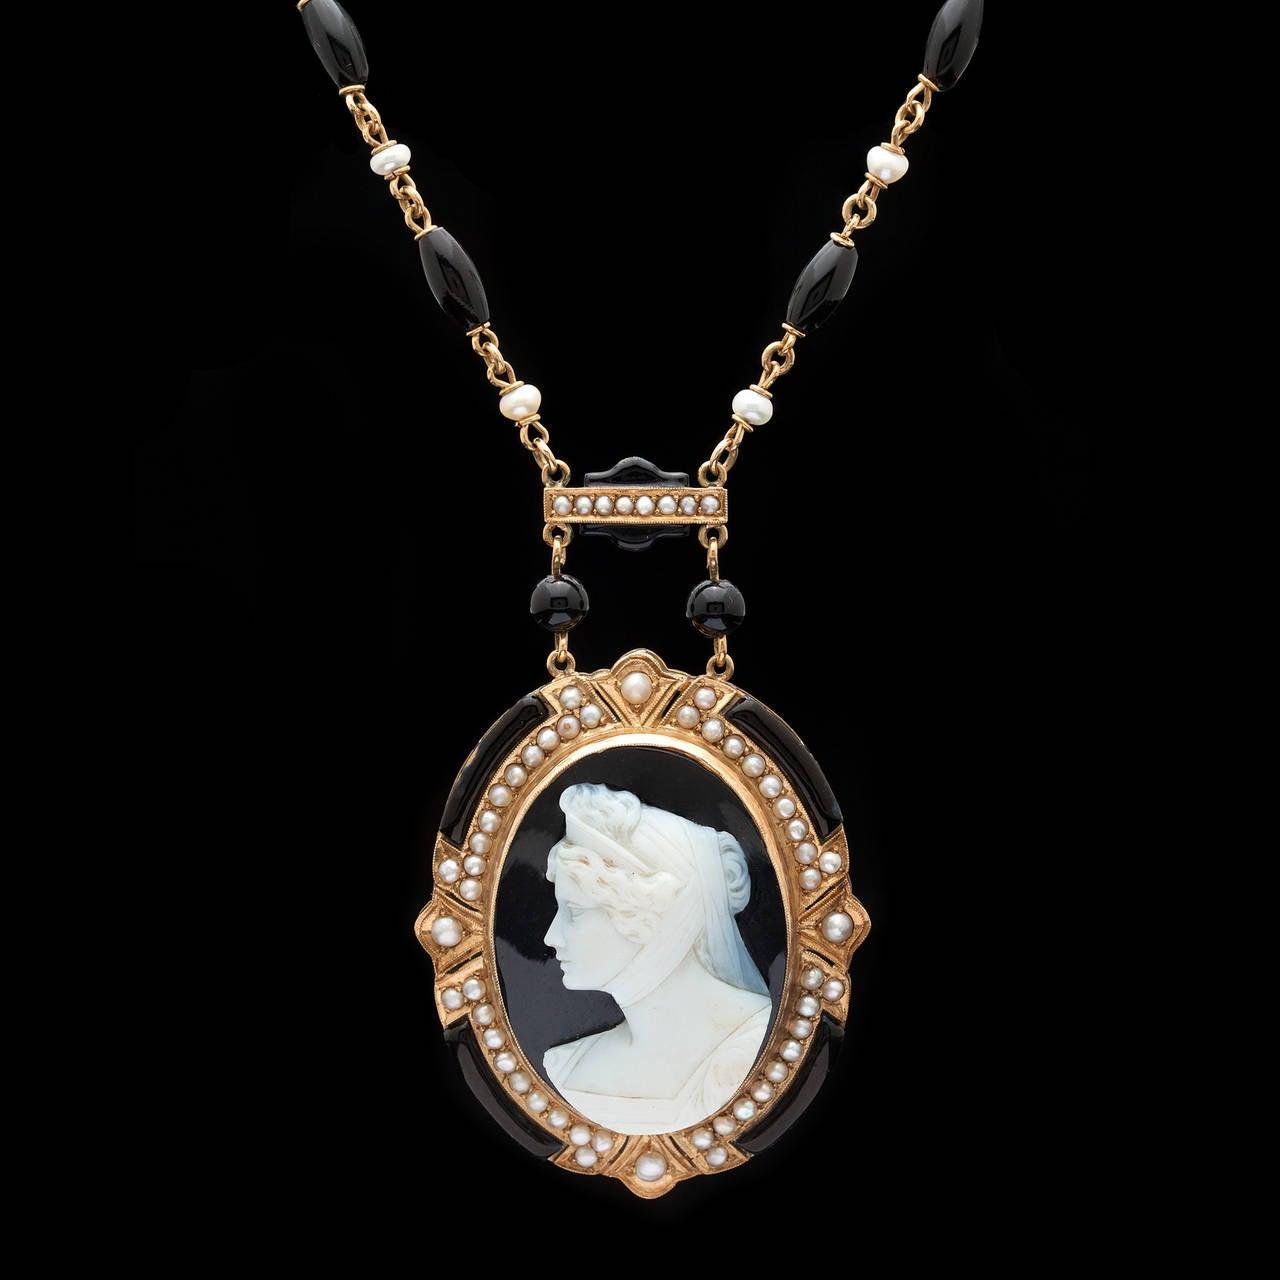 Victorian Cameo Pendant Necklace 2